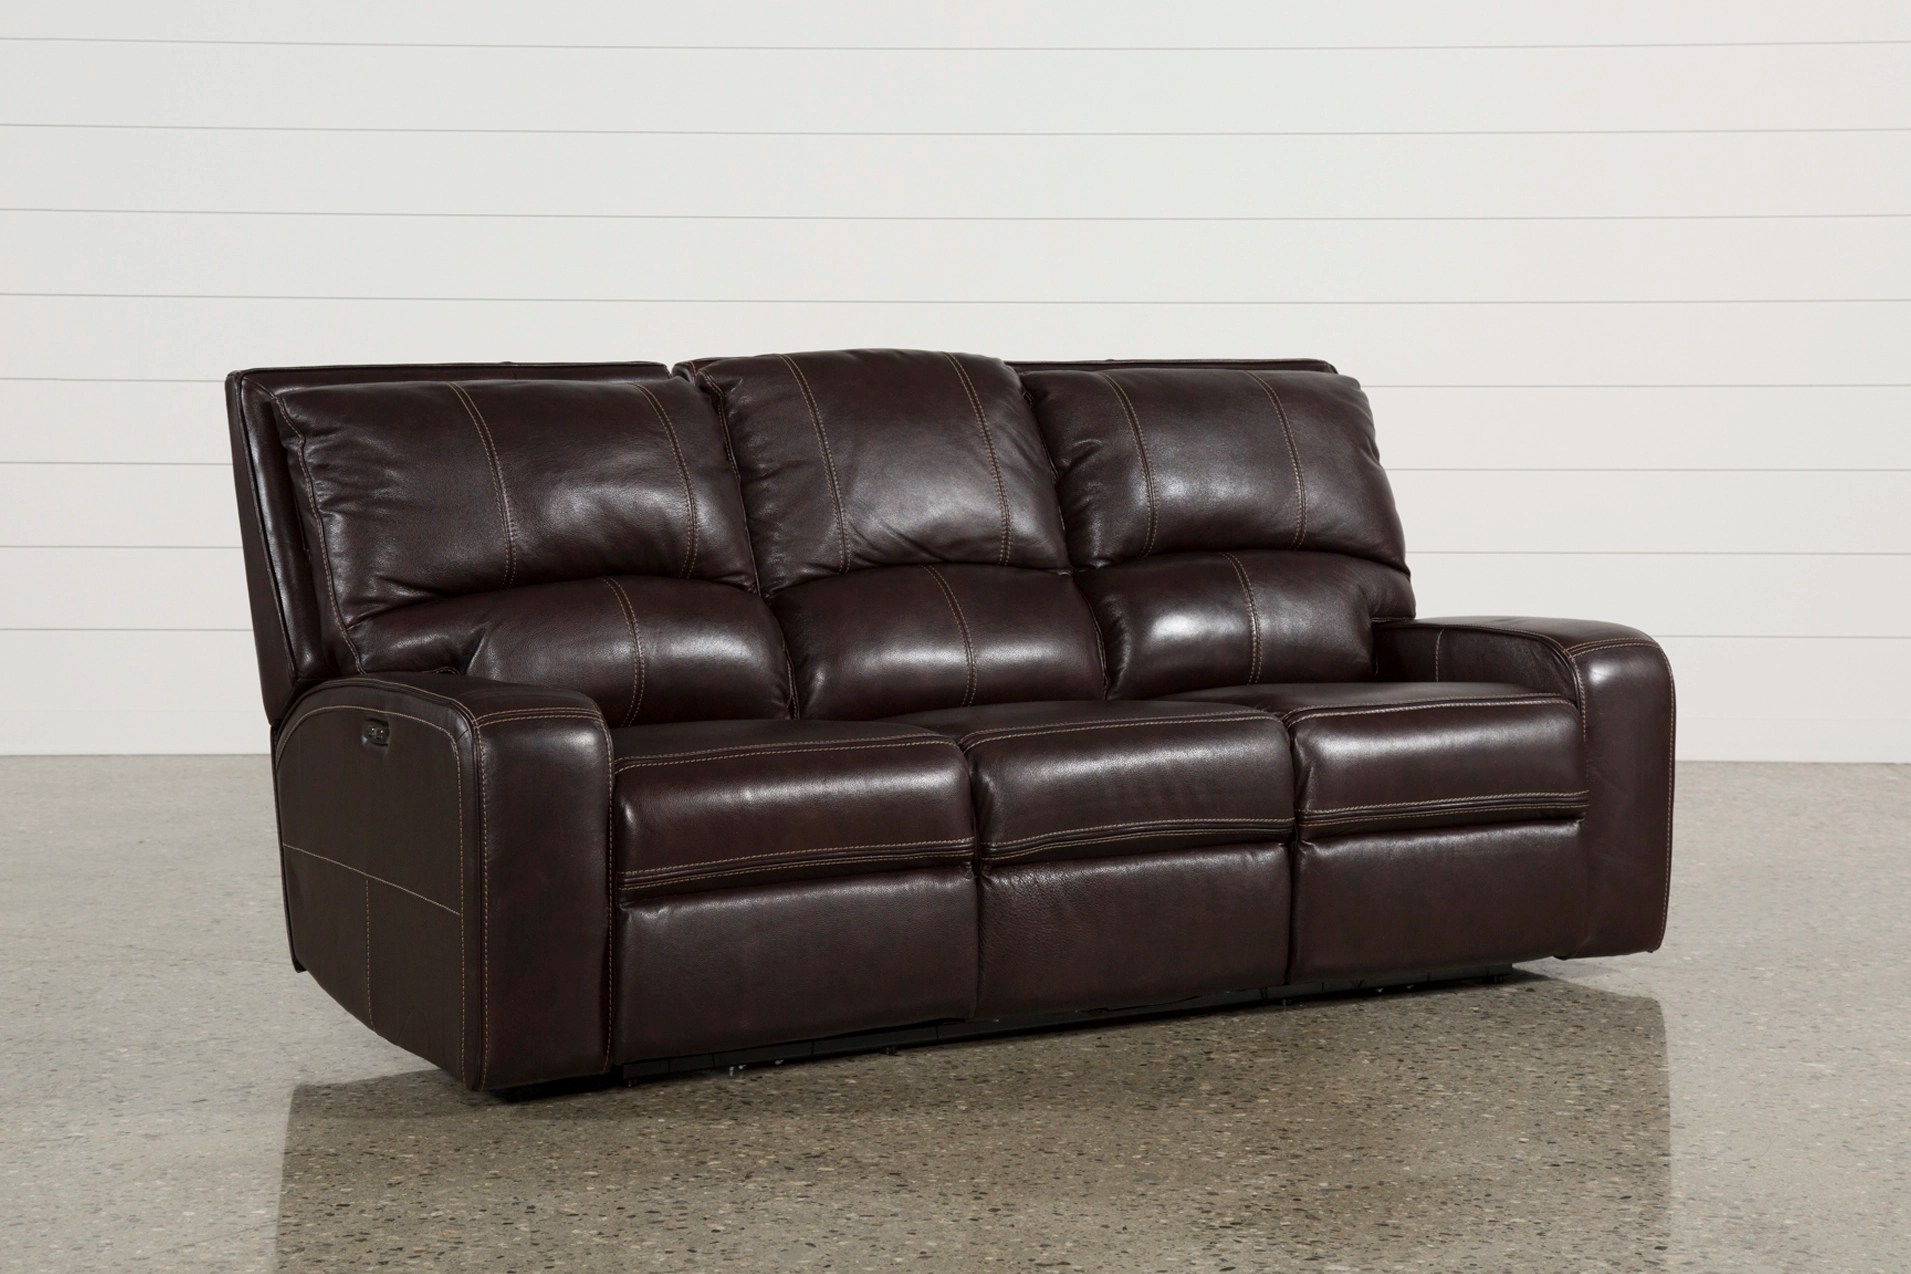 reclining sofa leather brown canape difference clyde dark power w headrest usb amp qty 1 has been successfully added to your cart